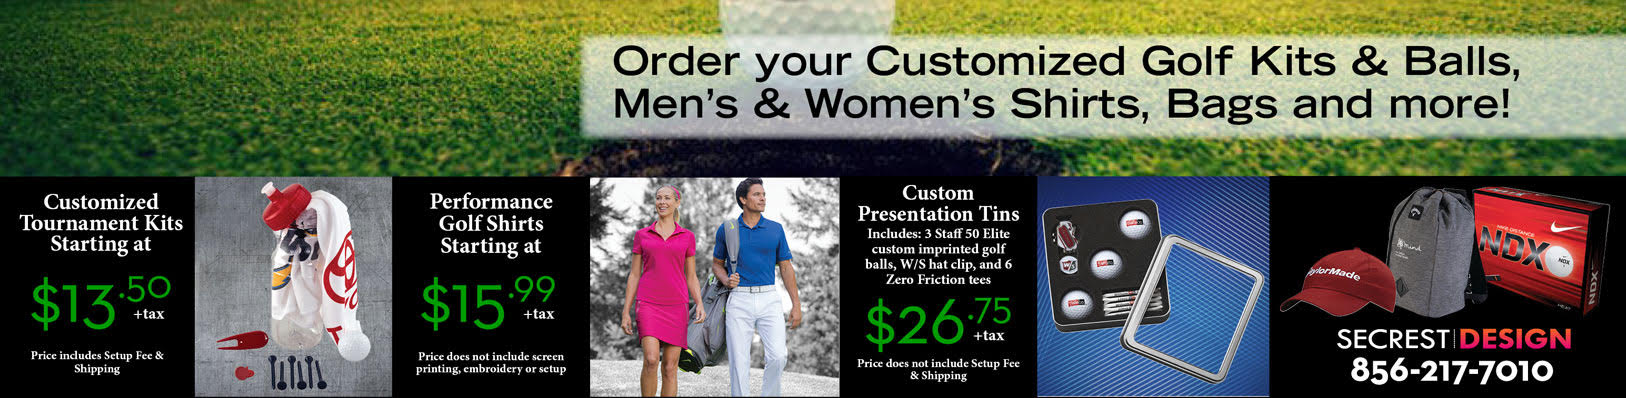 custom-golf-kits Golf Golf [your]NEWS